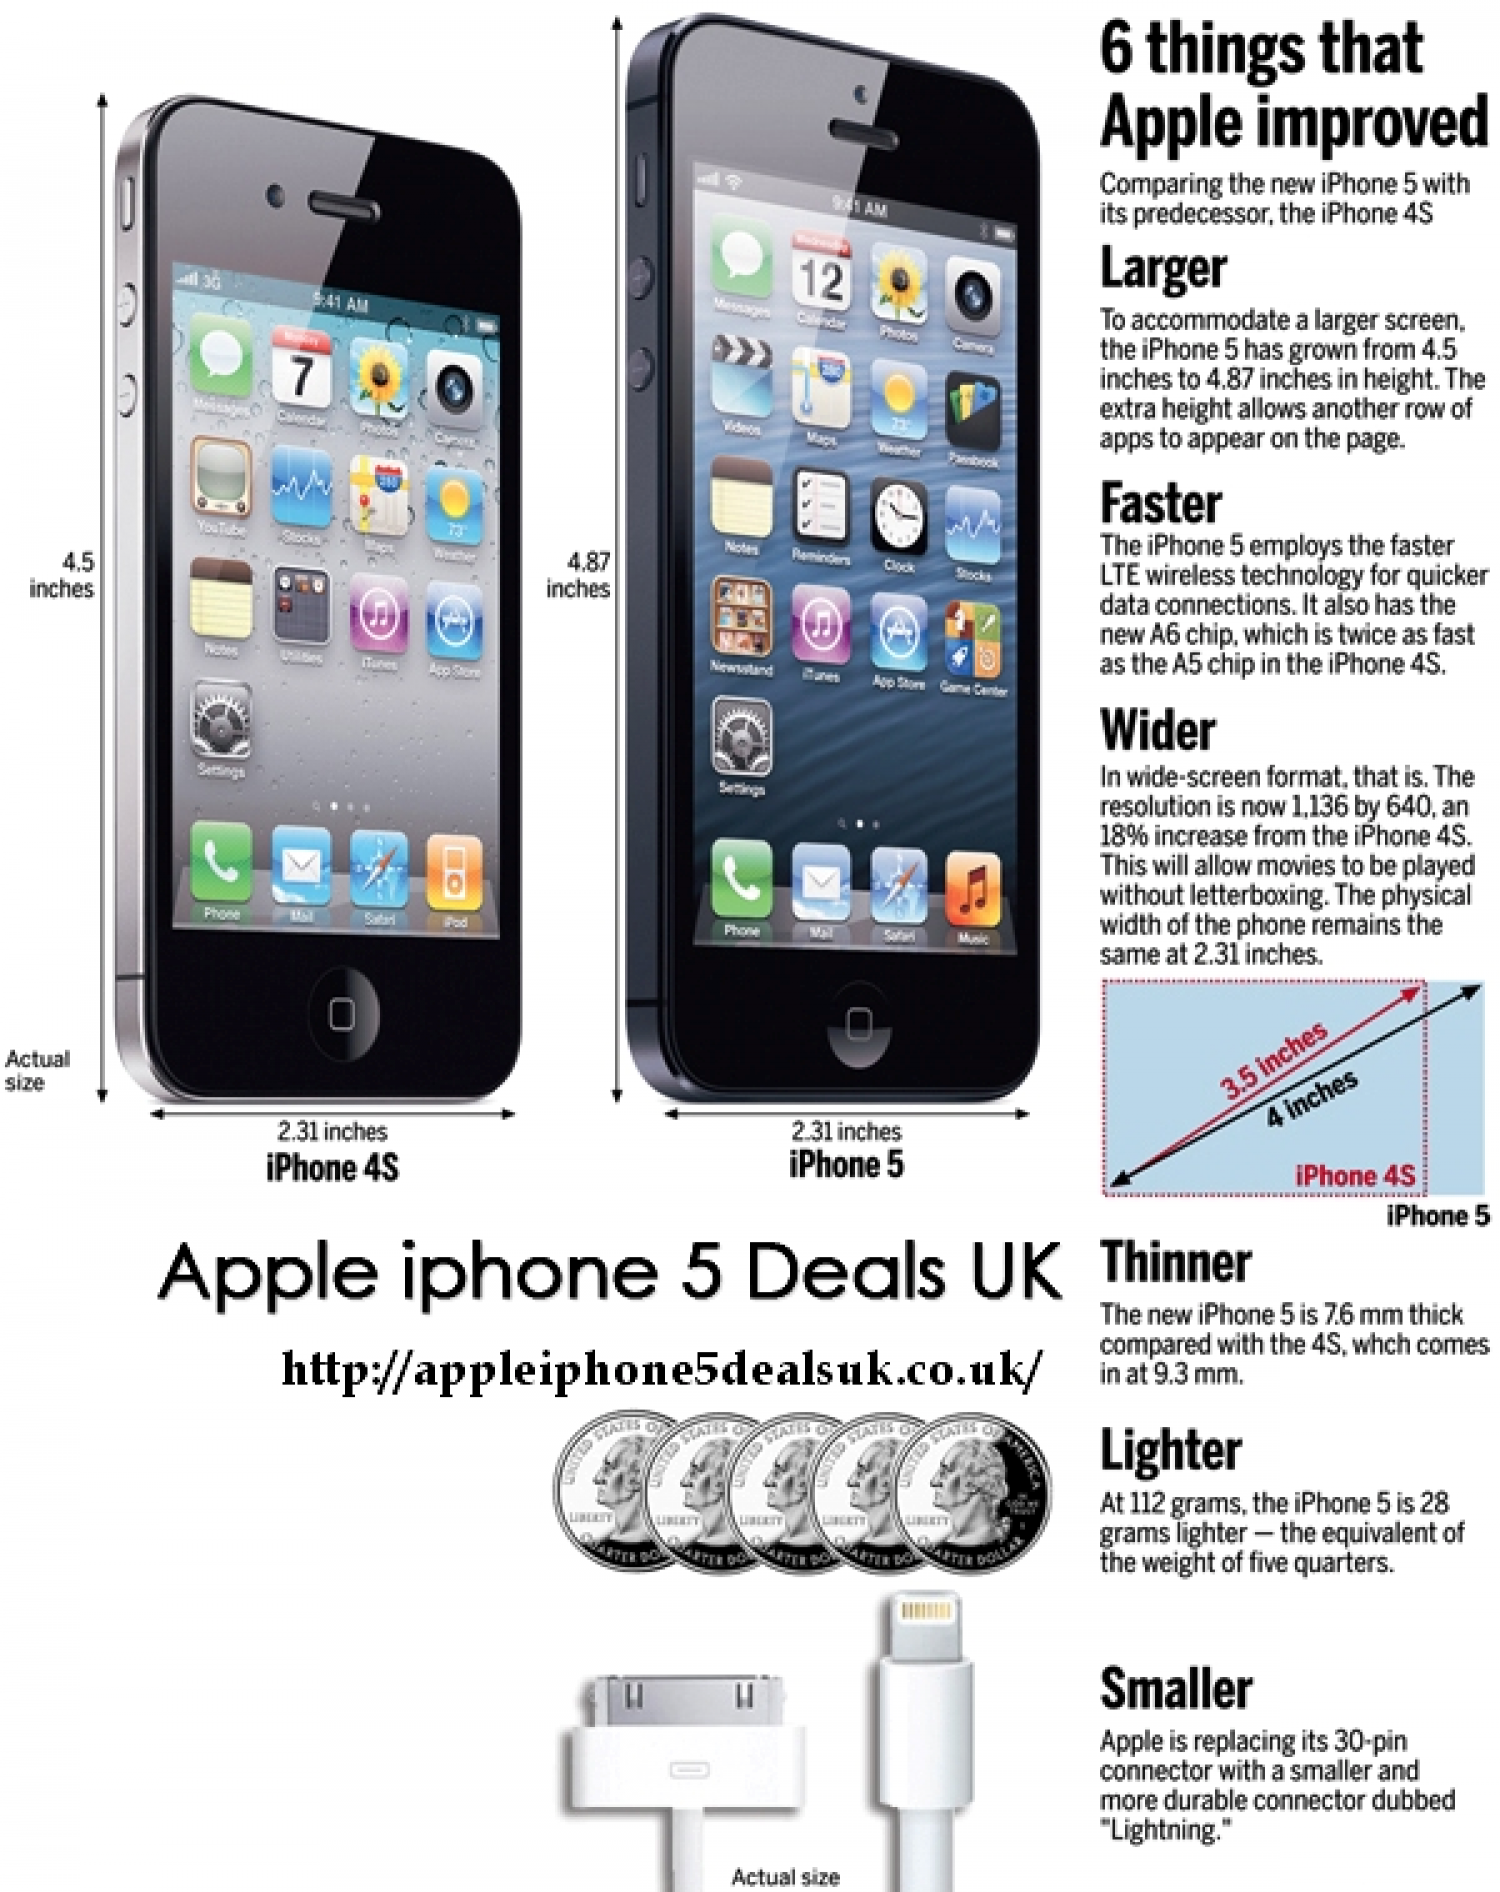 Apple iPhone 5 Deals-http://appleiphone5dealsuk.co.uk/ Infographic